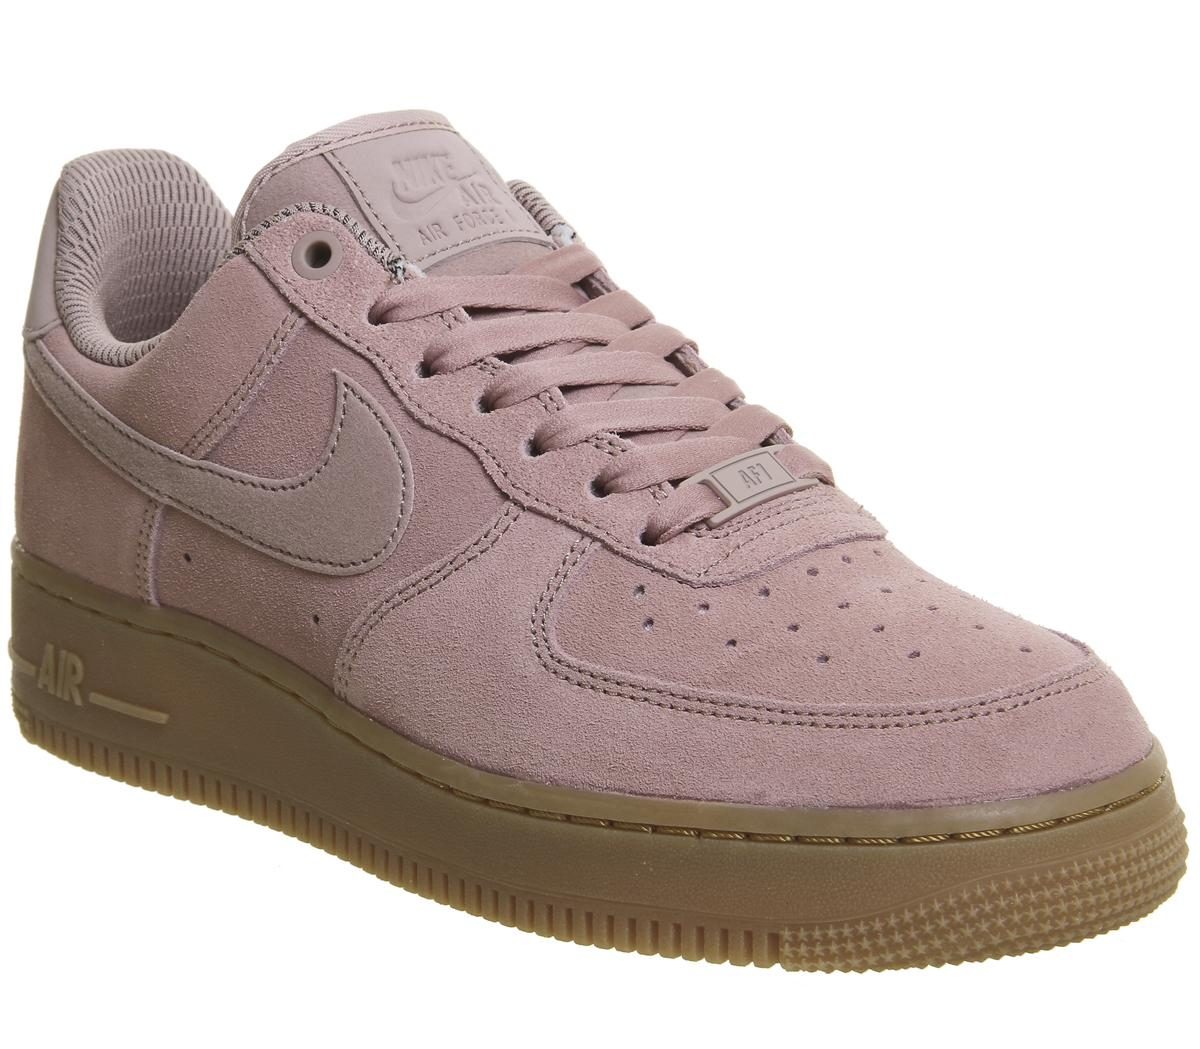 Nike Air Force 1 '07 Lv8 Suede Mens Particle Pink 70% Off